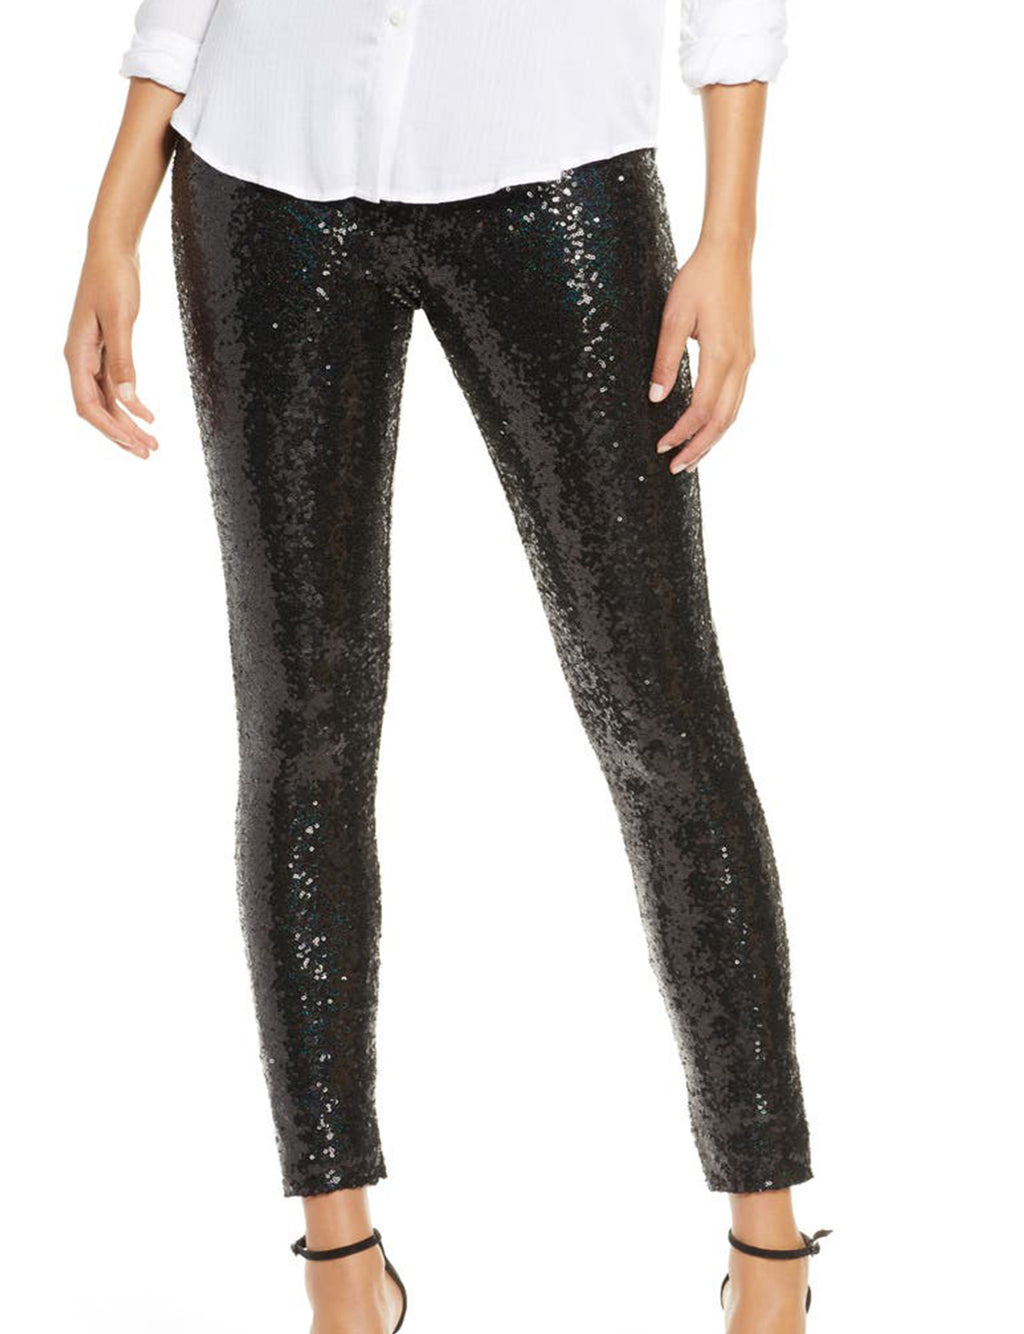 Sequin Legging in Black